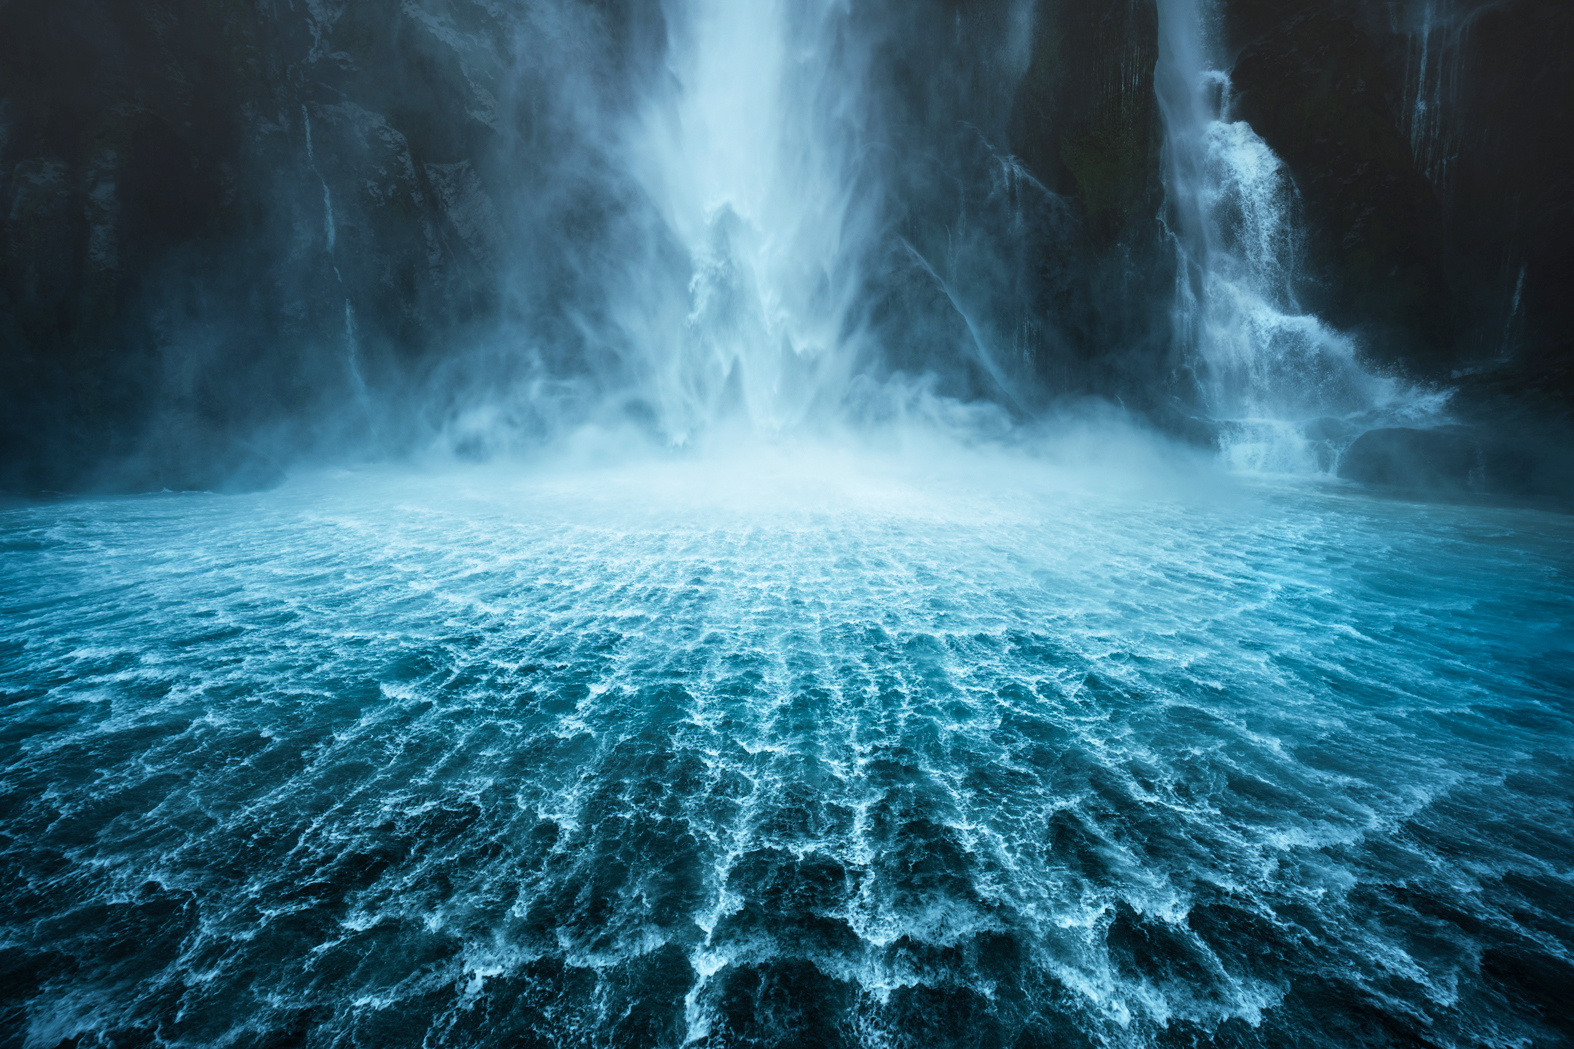 Tessellated water patterns below Stirling Falls, Milford Sound New Zealand